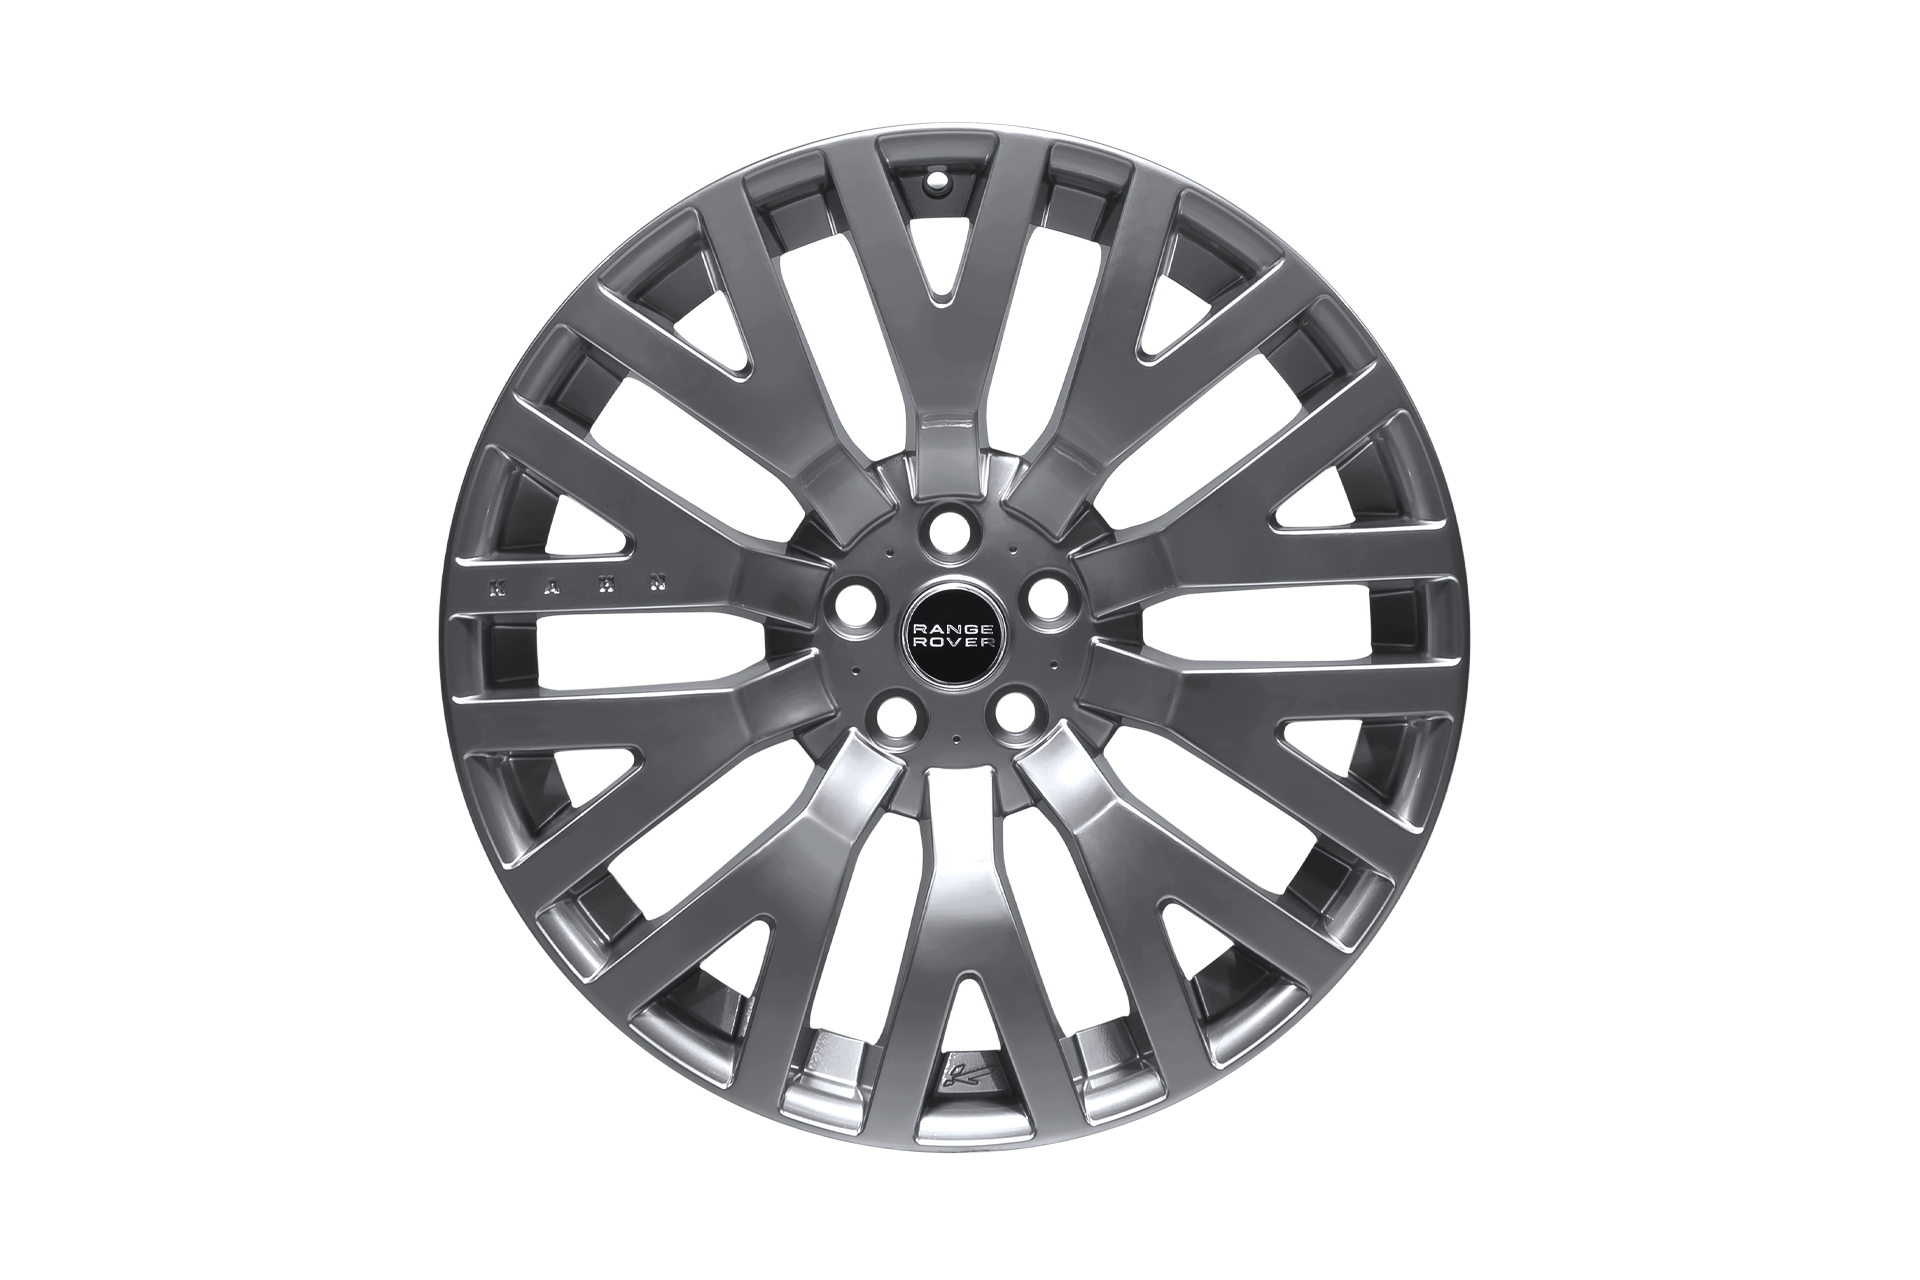 Range Rover Sport (2018-Present) Rs Light Alloy Wheels by Kahn - Image 2390